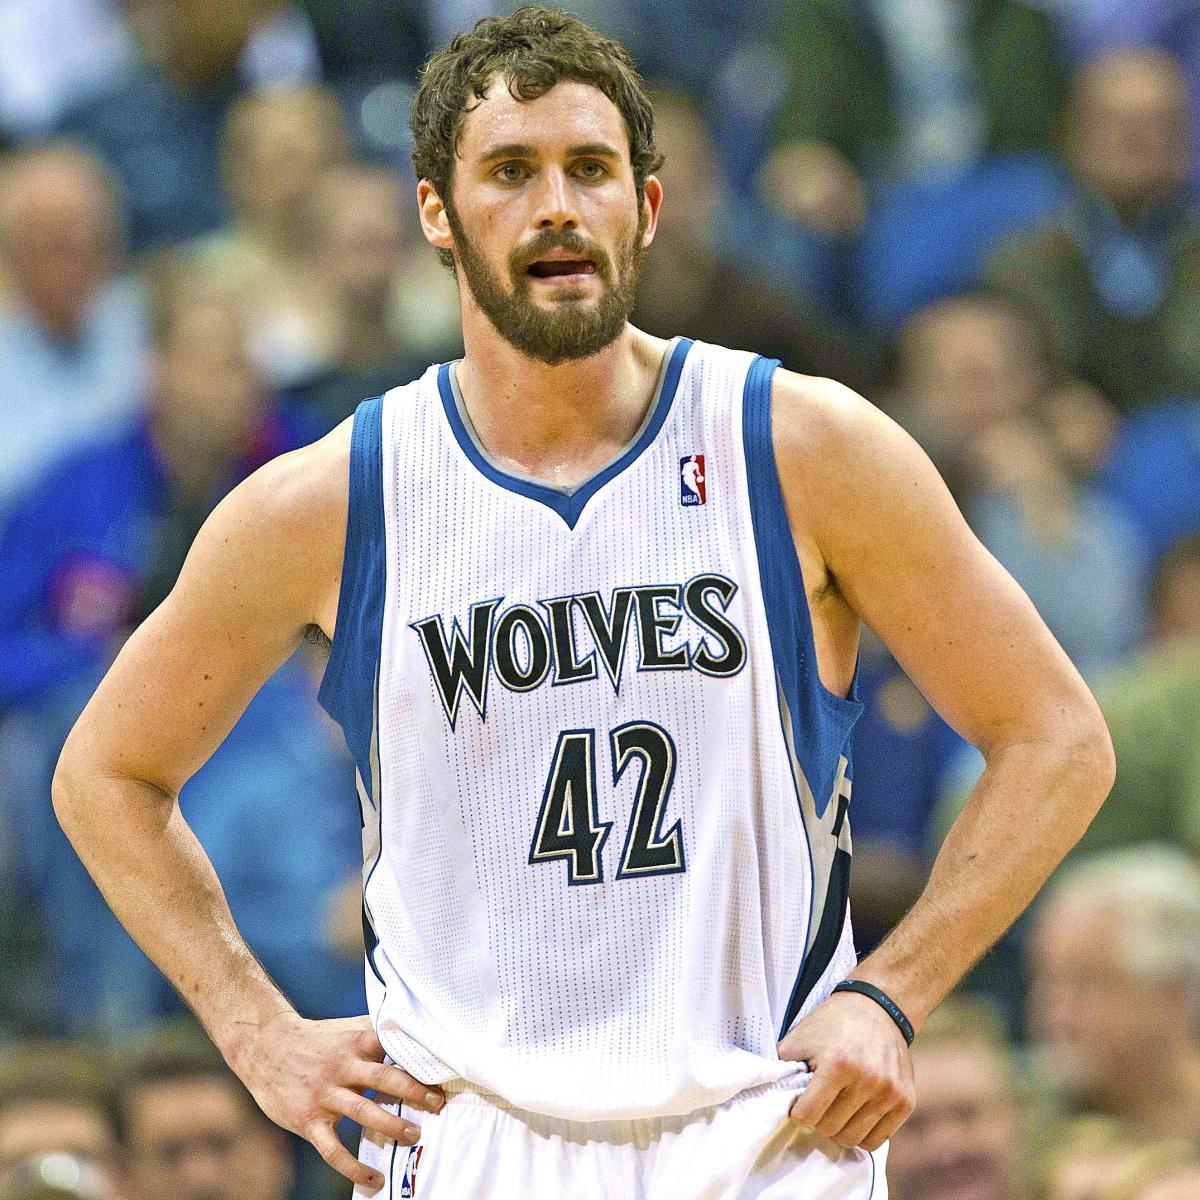 Nuggets Starting Lineup: Kevin Love Injury: Update On Timberwolves Star's Hand